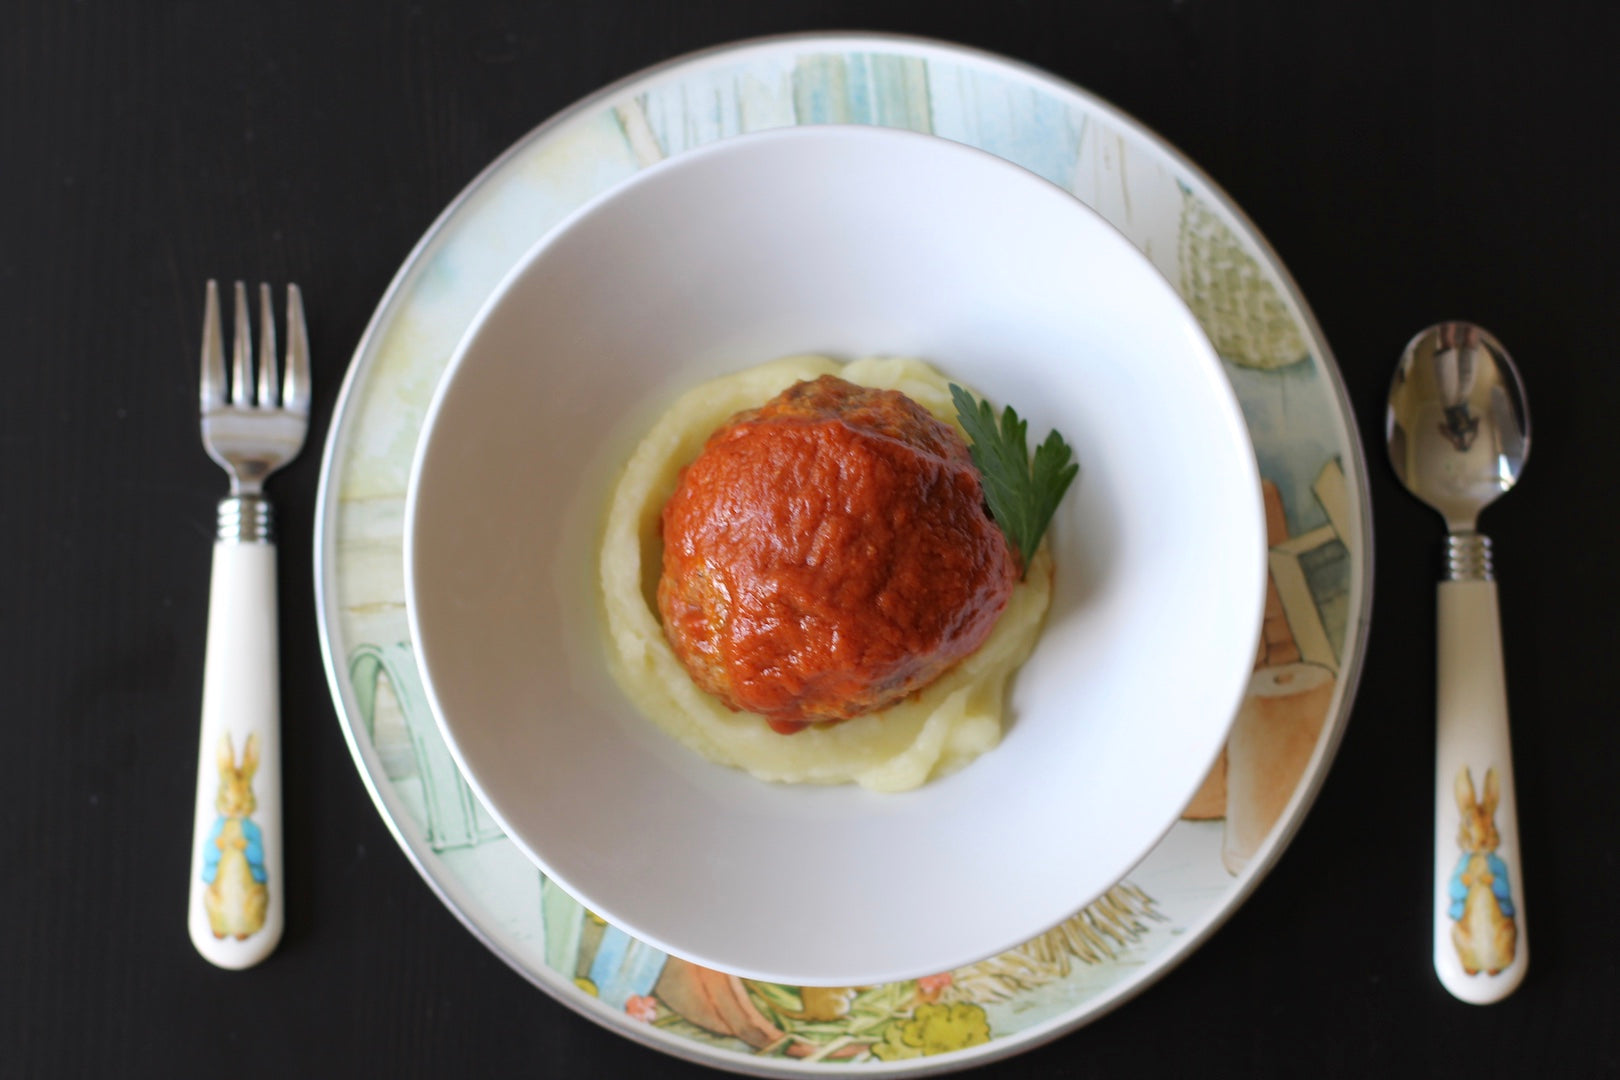 kids meatball and mashed potato with tomato sauce